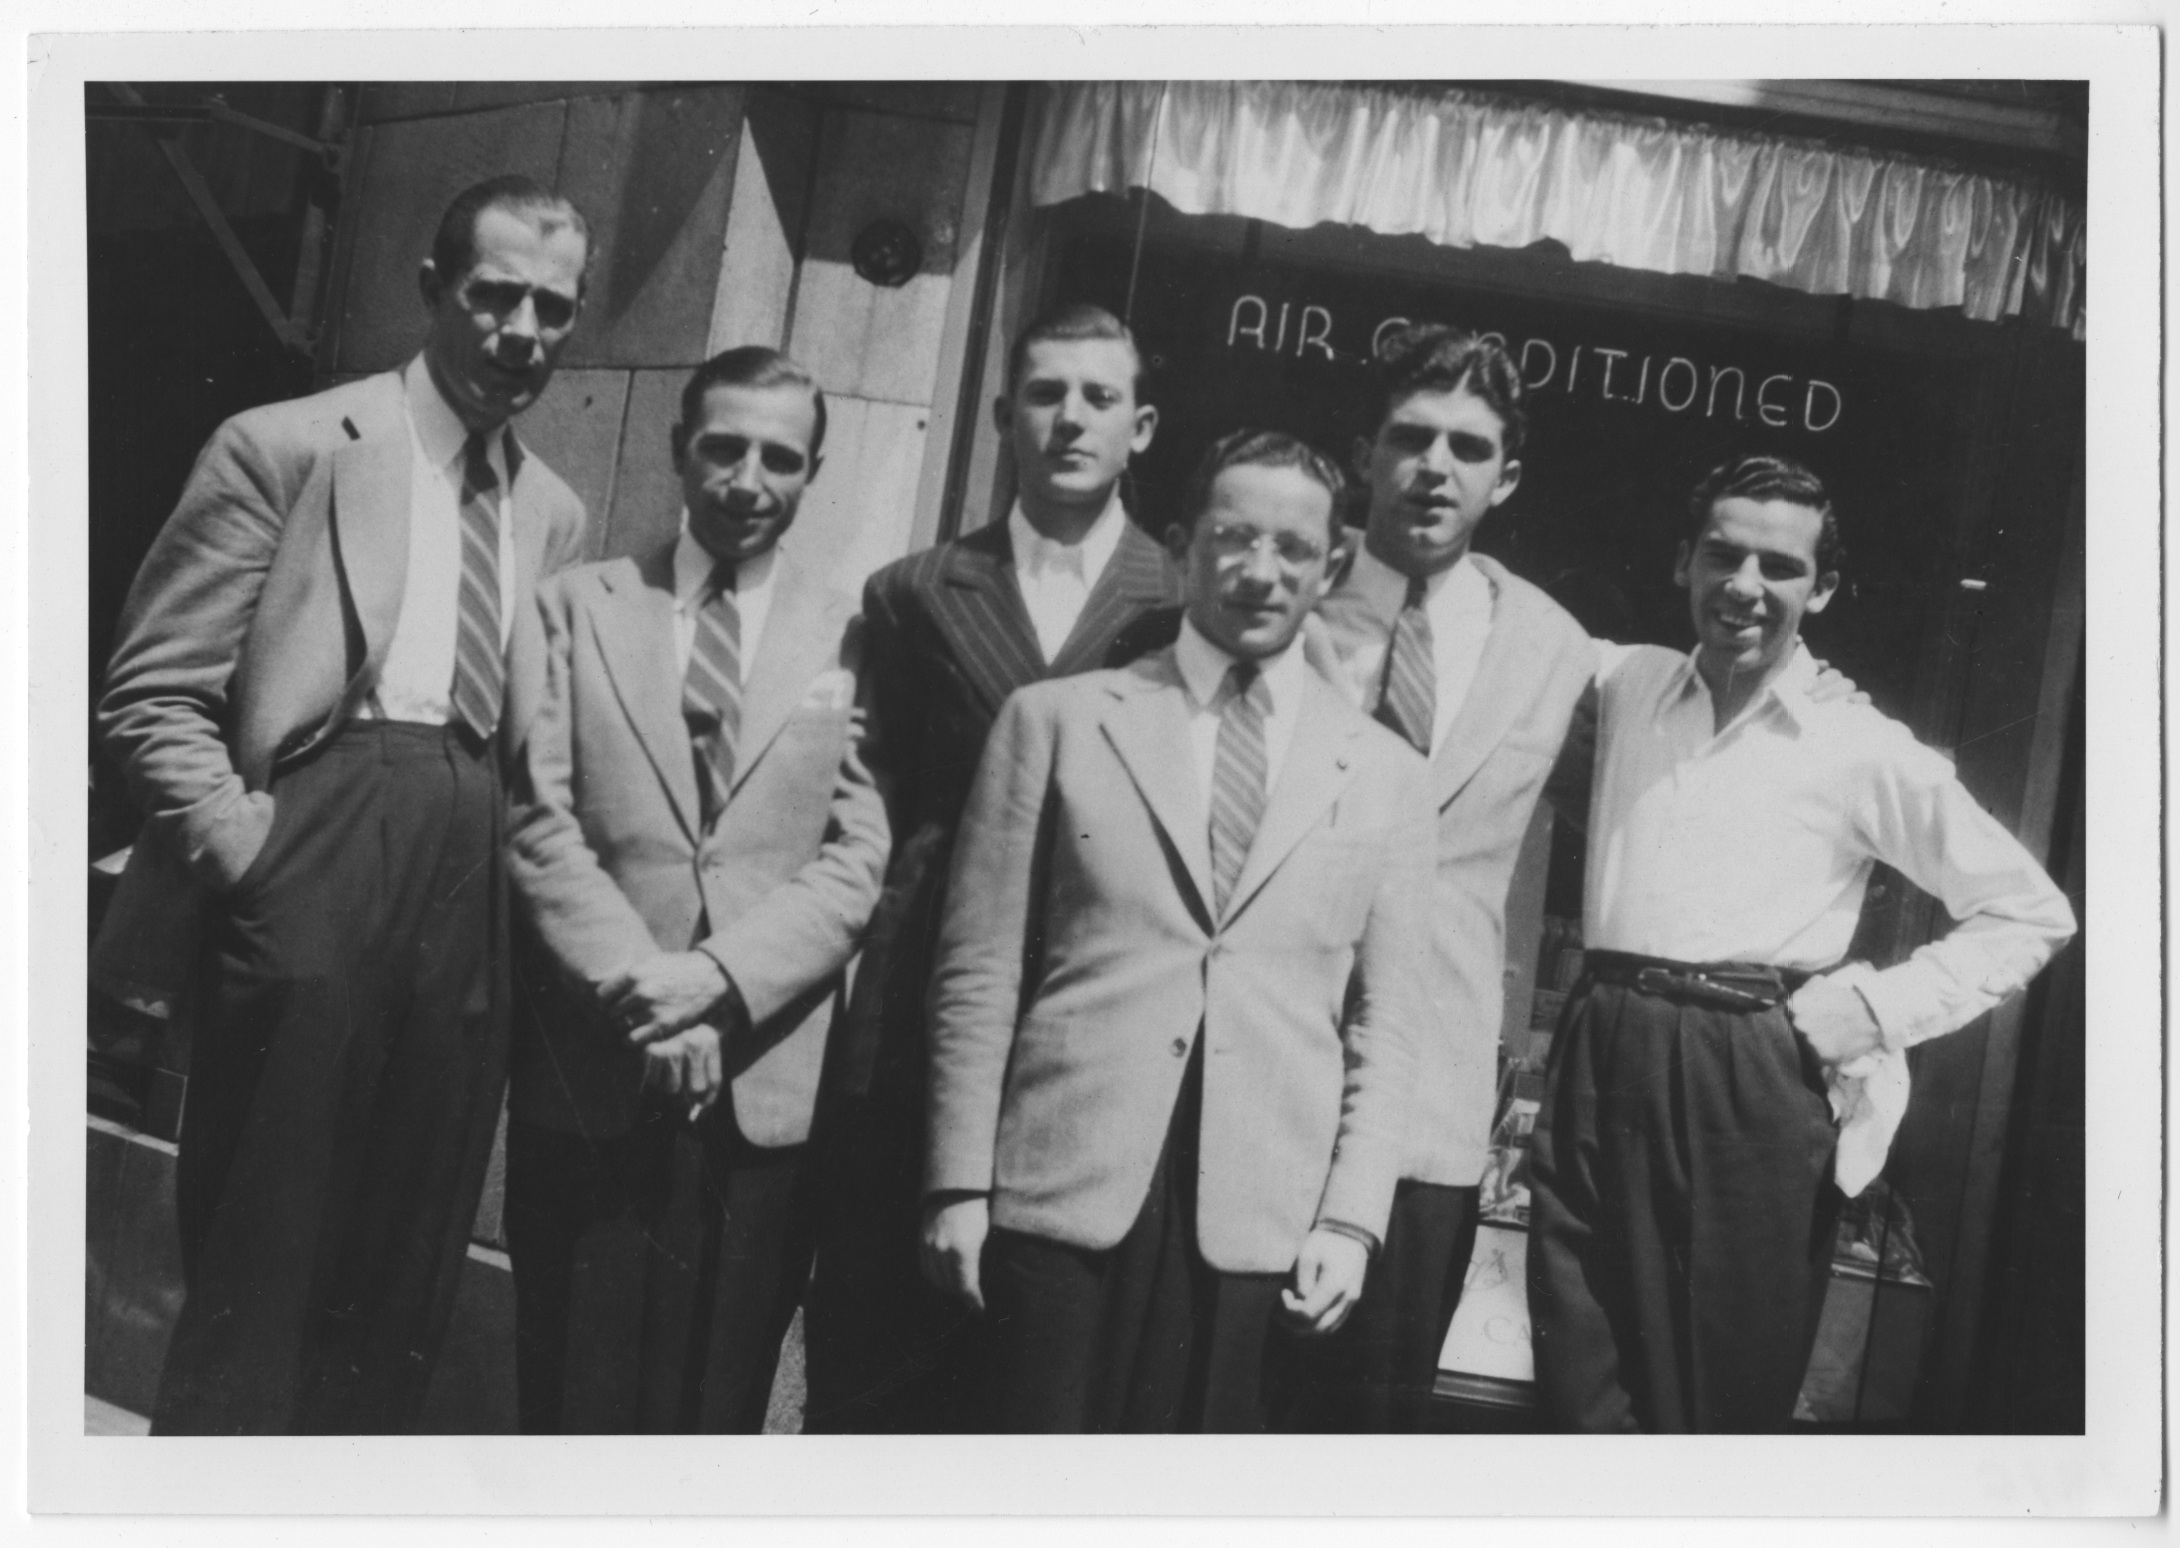 Artie Shaw Theme Song Buddy Rich At 100 Moten Swing 1938 Bunny Berigan Swing Beyond